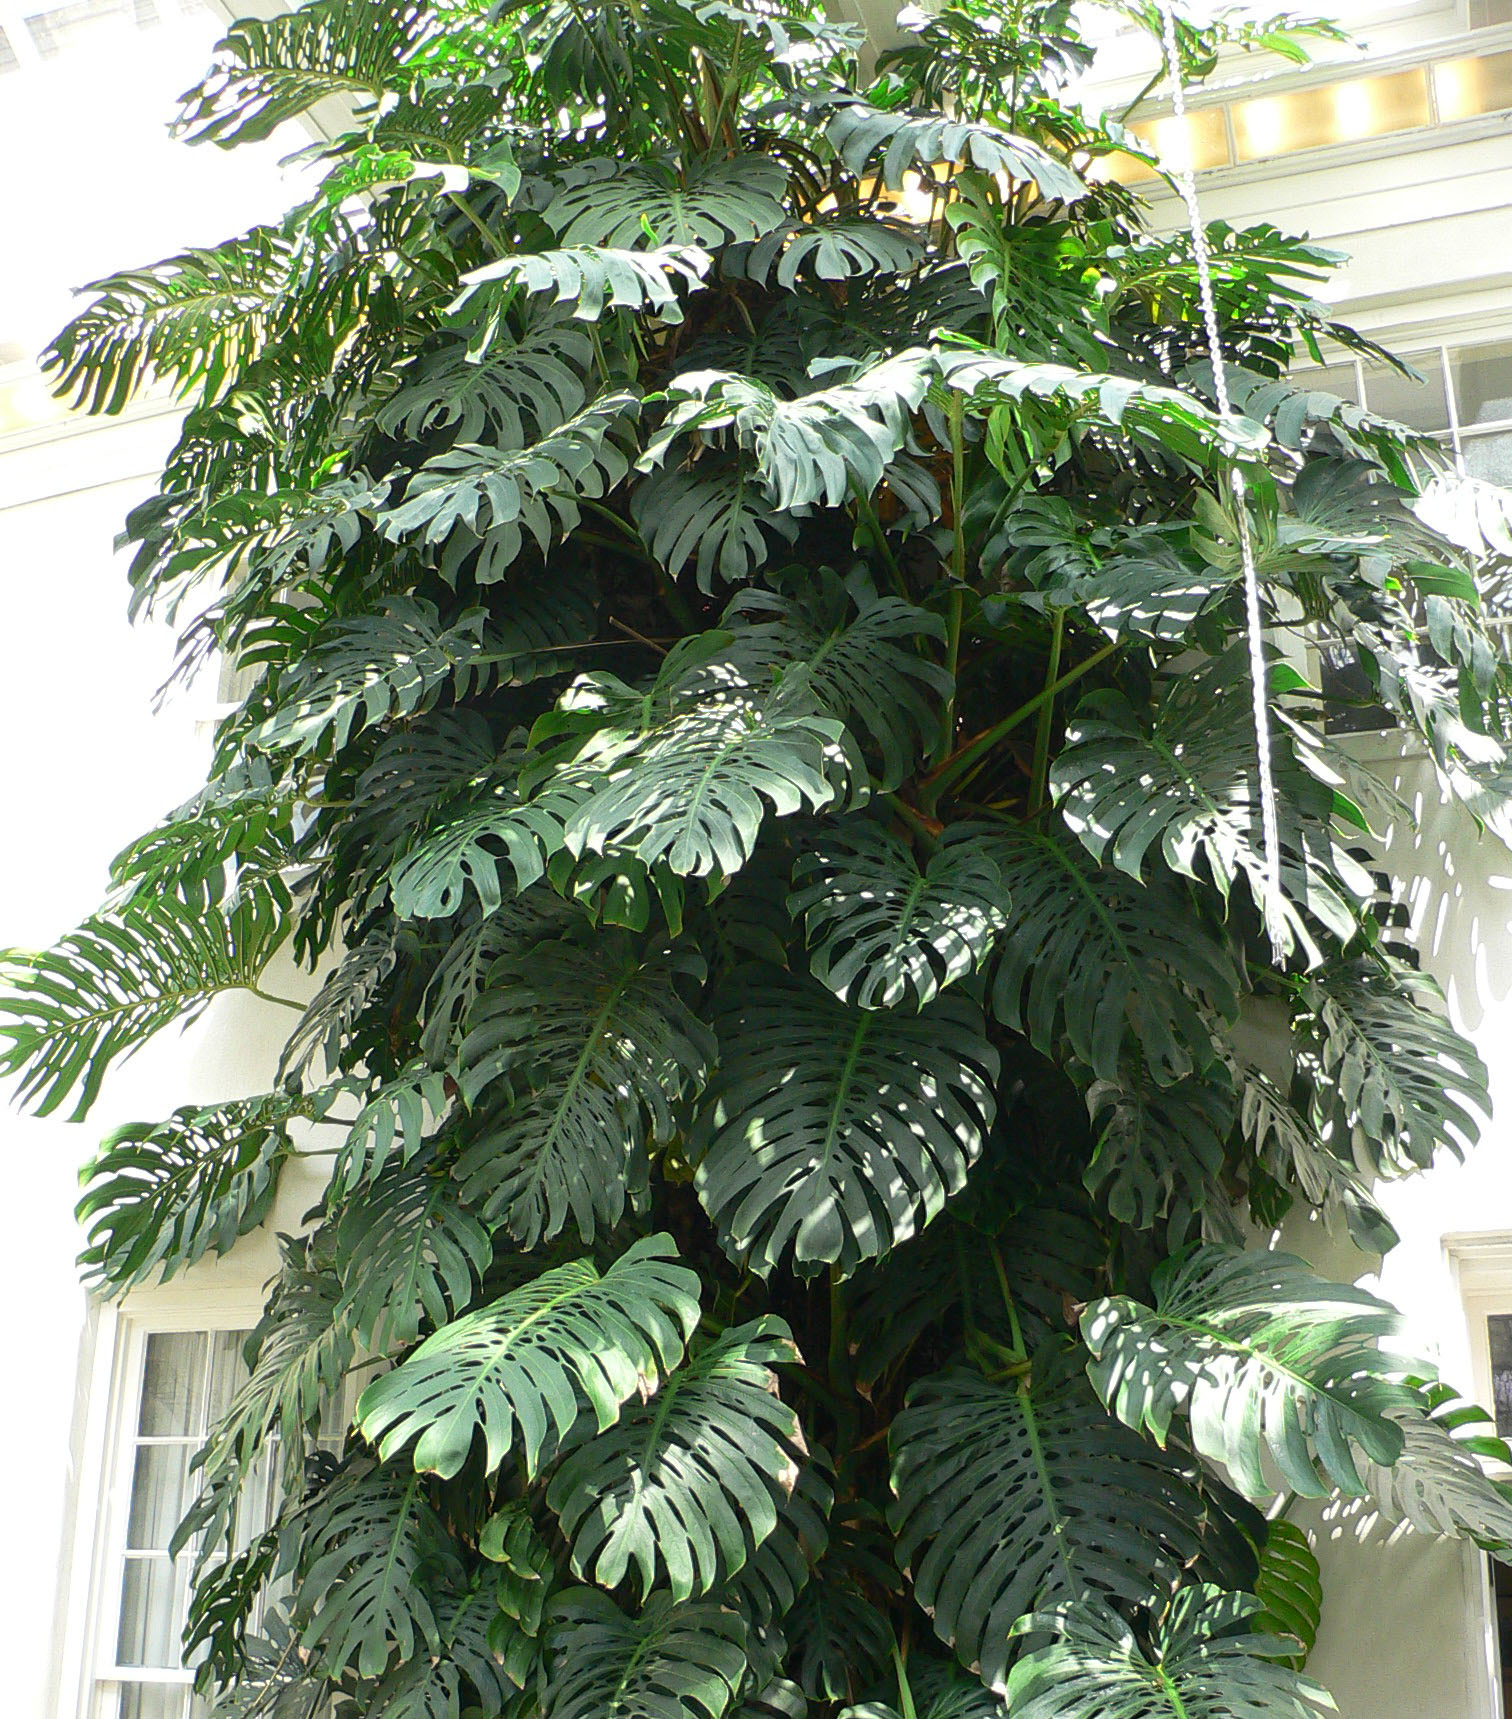 Depiction of Monstera